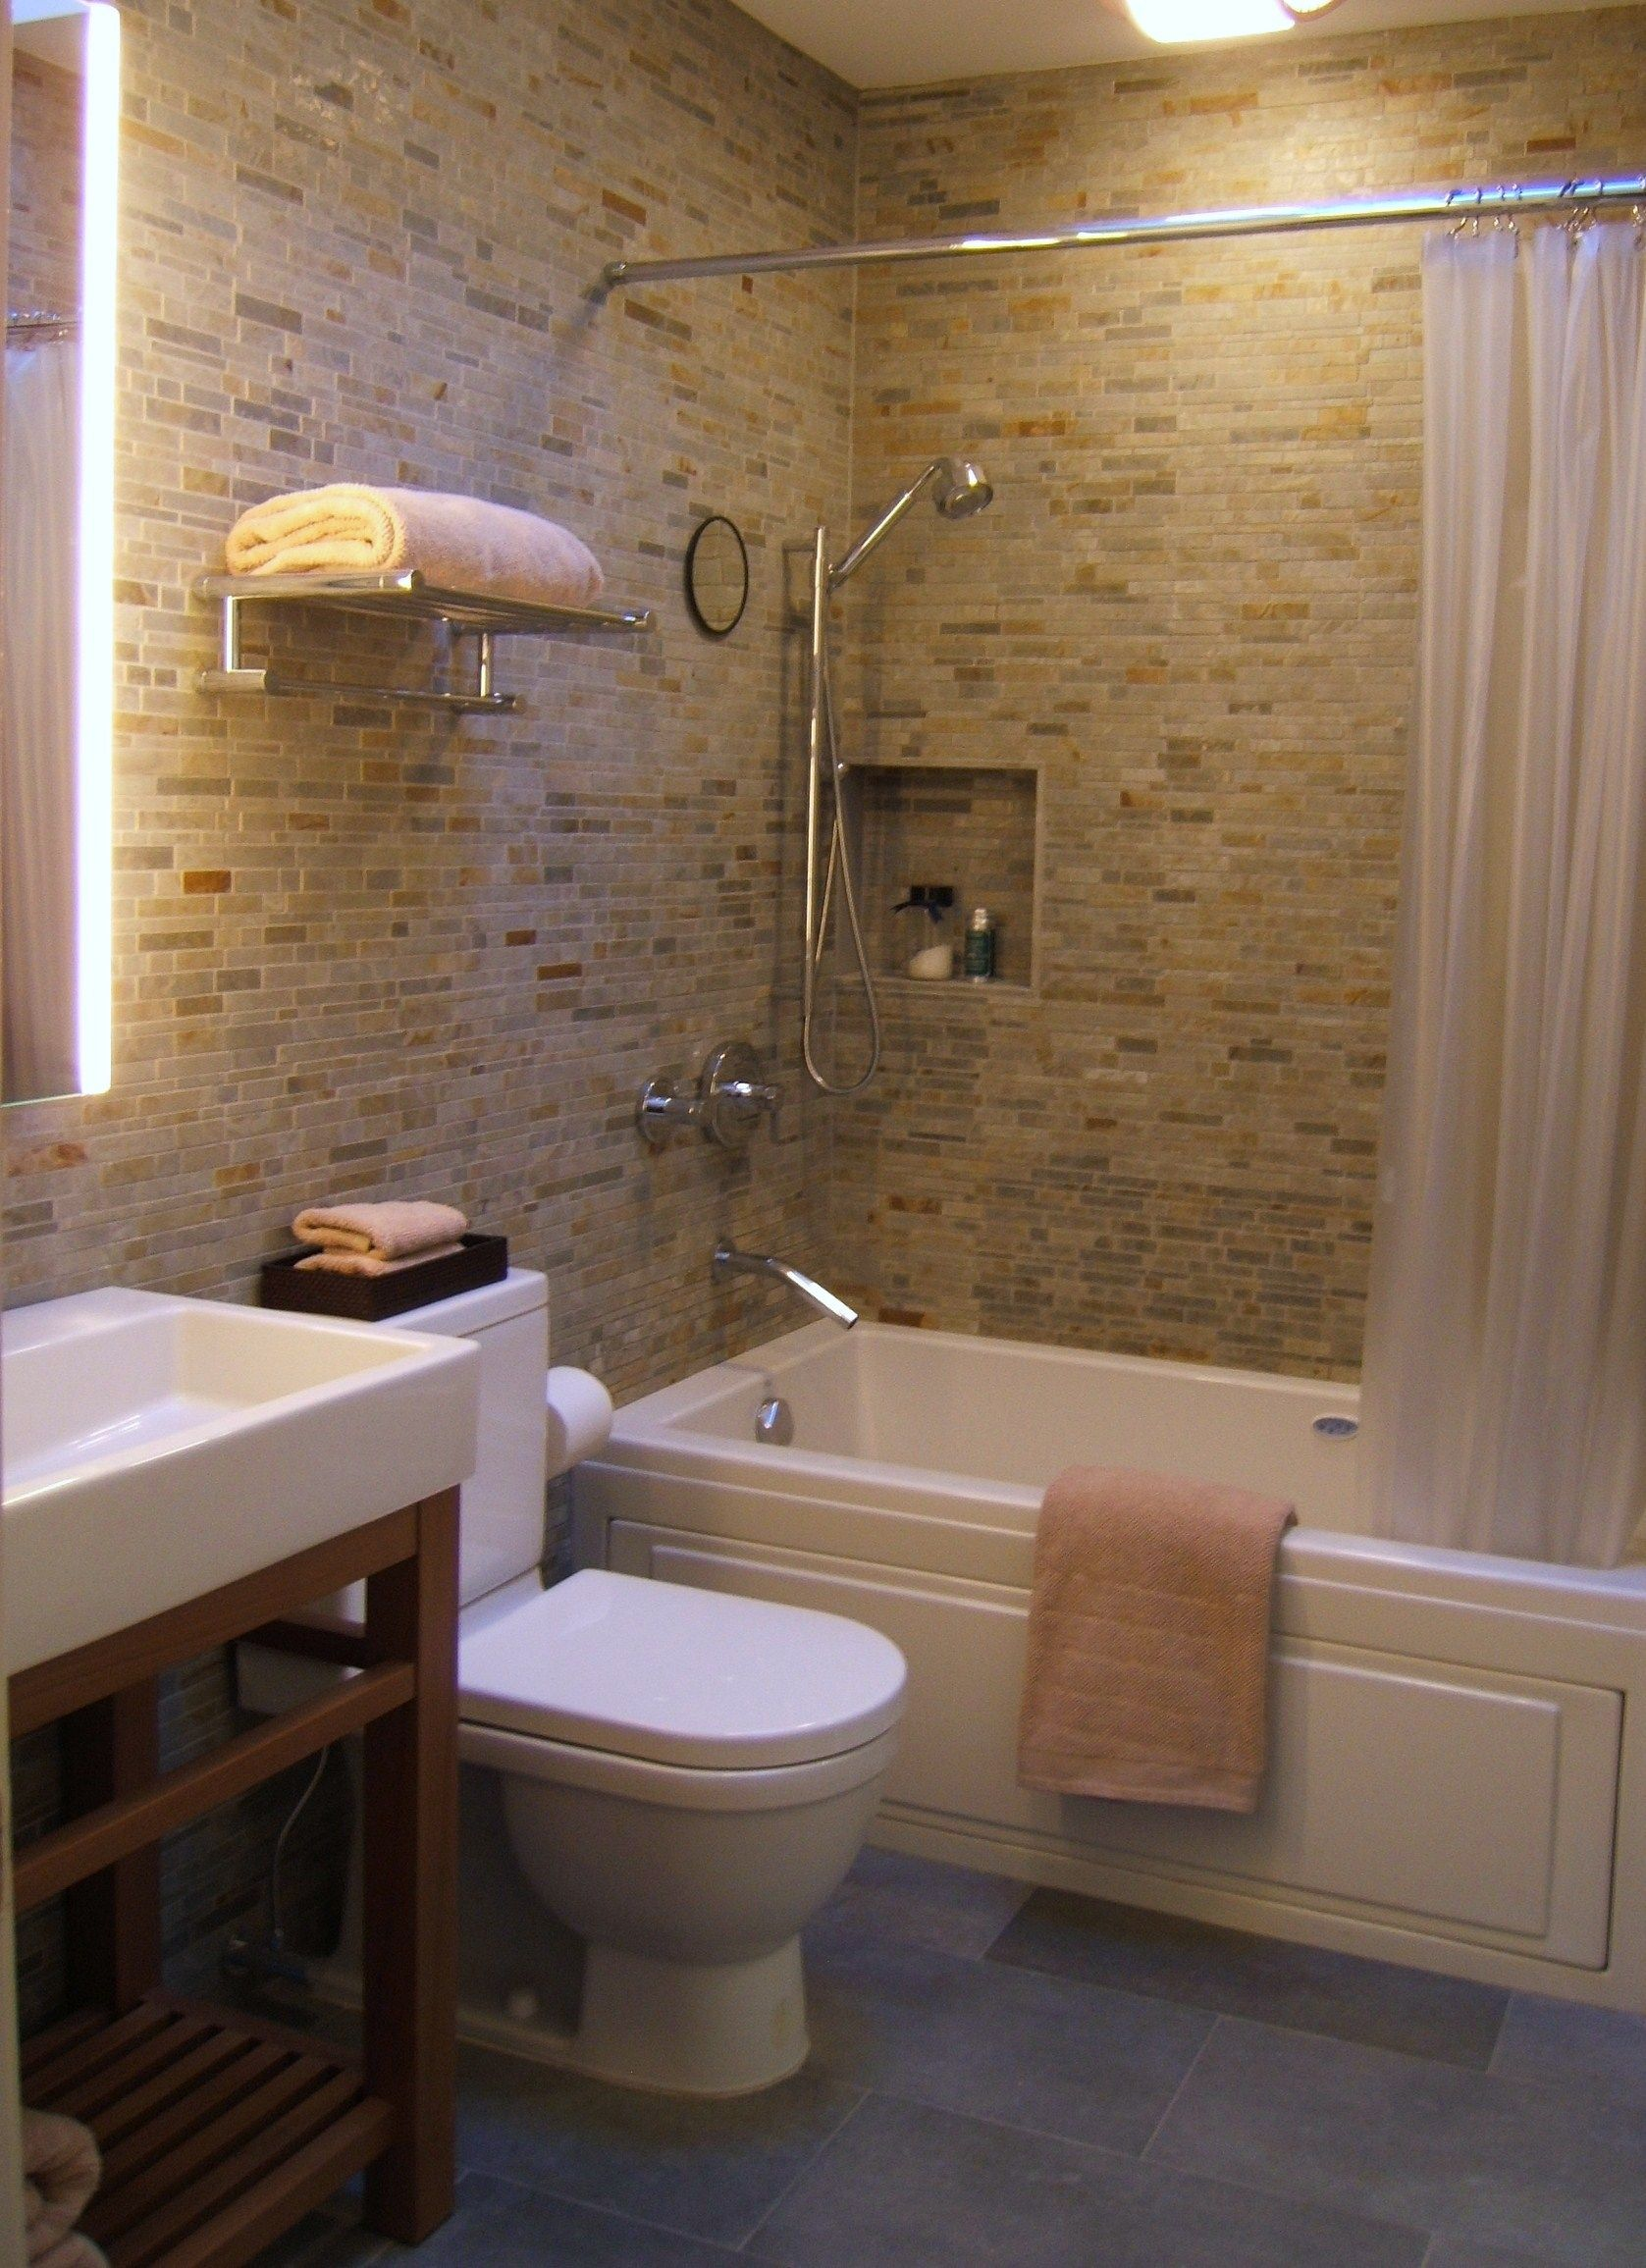 Small bathroom designs south africa small bath for Bathroom design and renovations